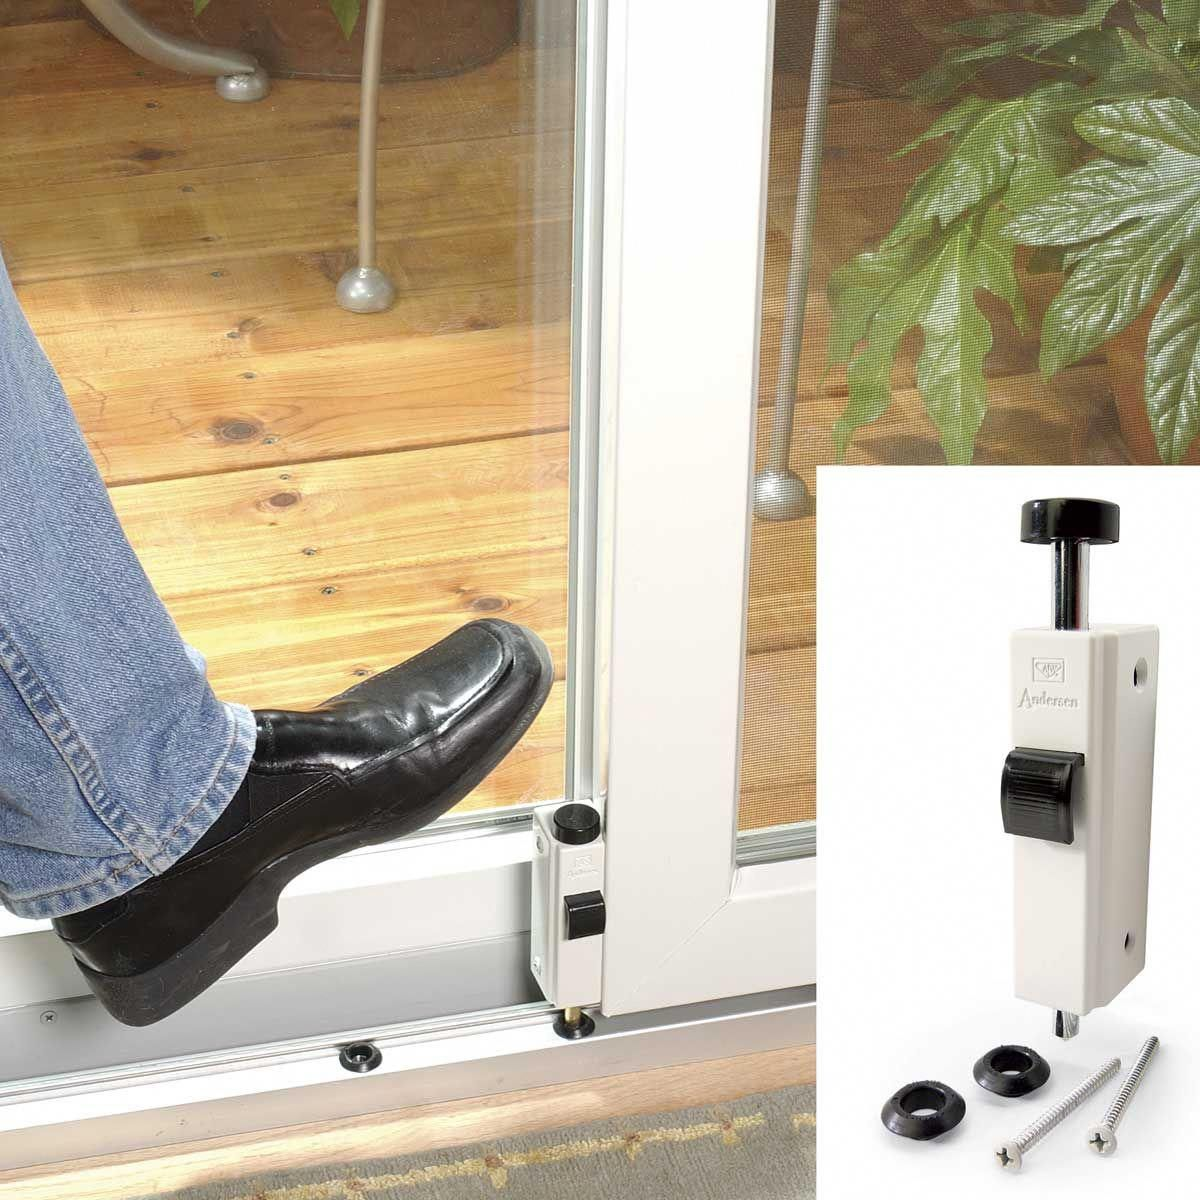 Patio Door Security Systems: Home Security Tips Like Ways To Secure Your Patio Doors